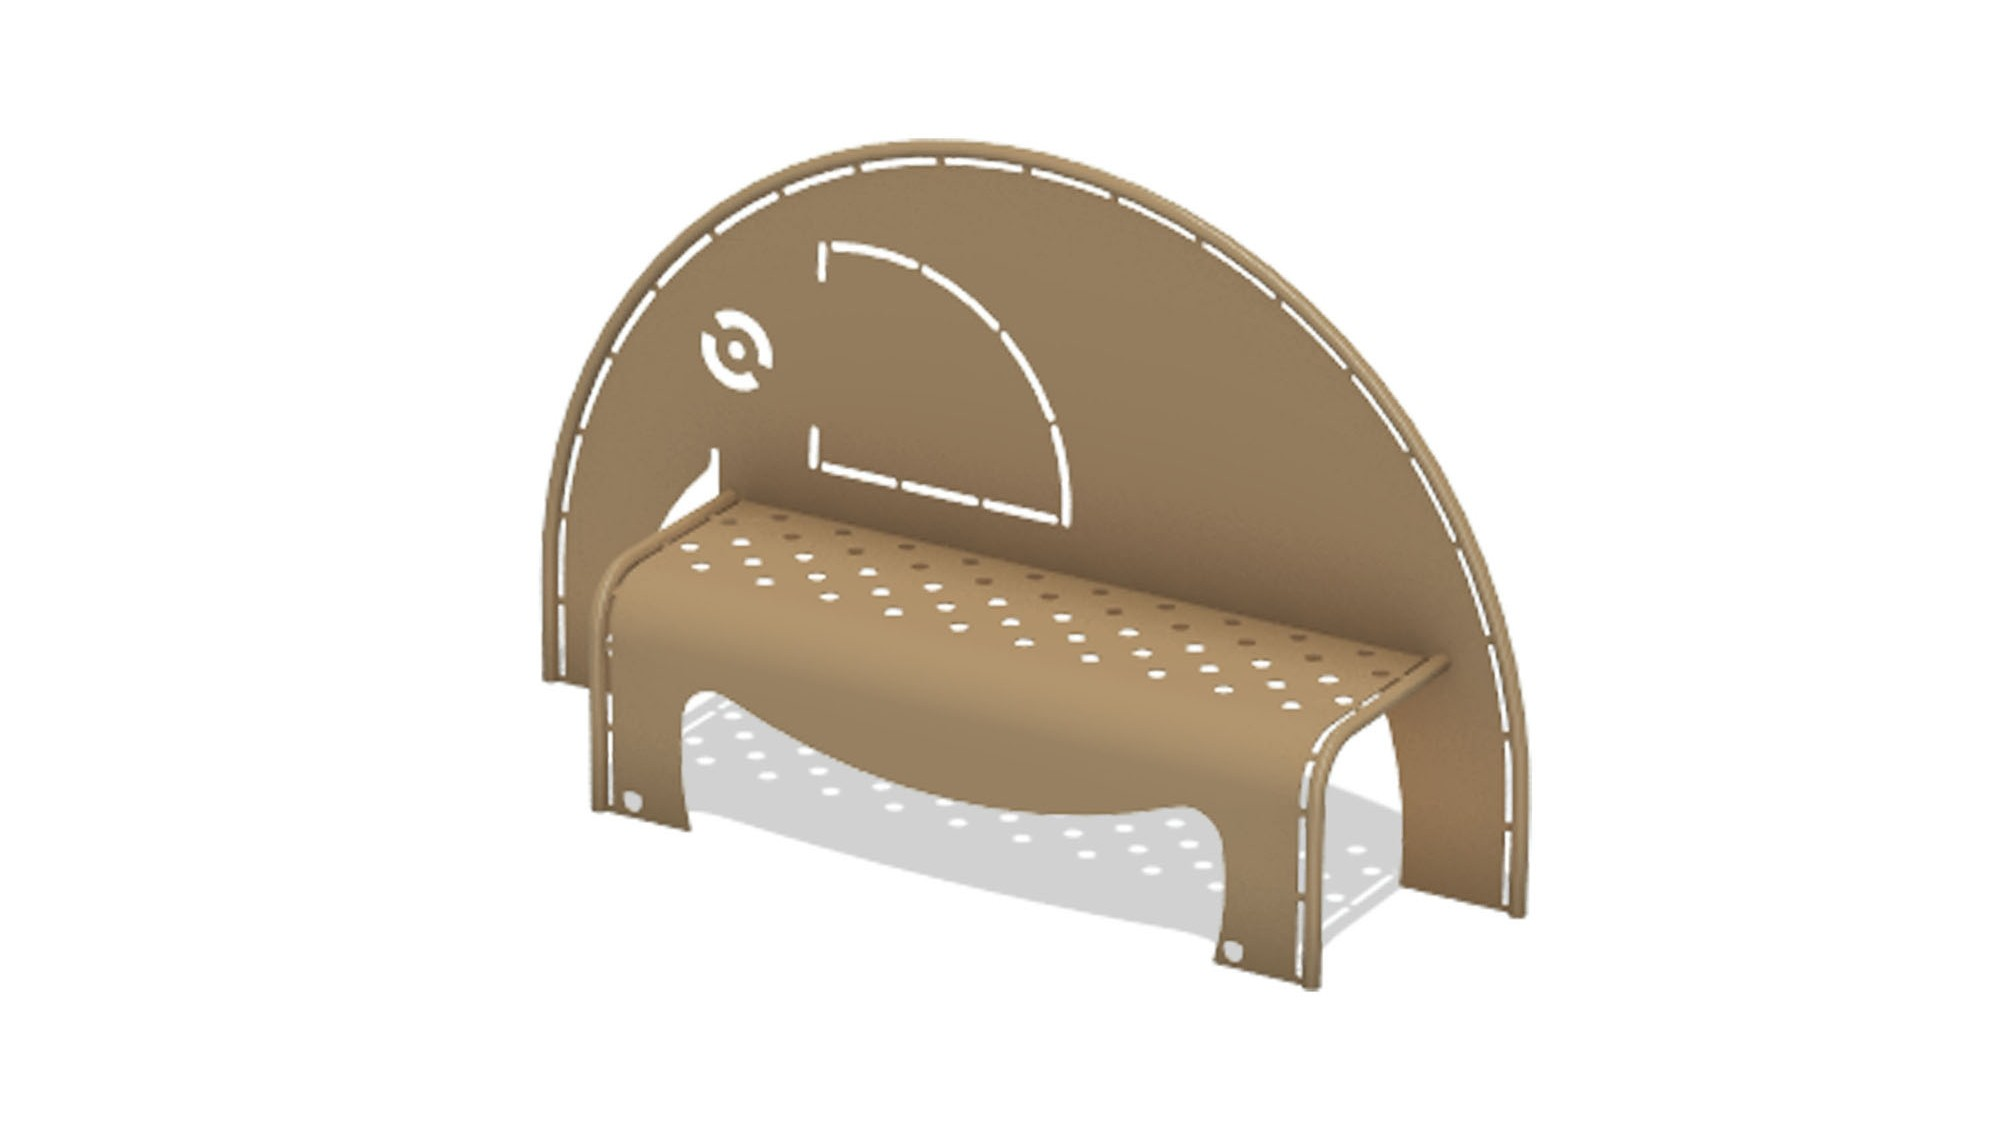 4' Elephant Bench w/Perforated Seat - In-Ground